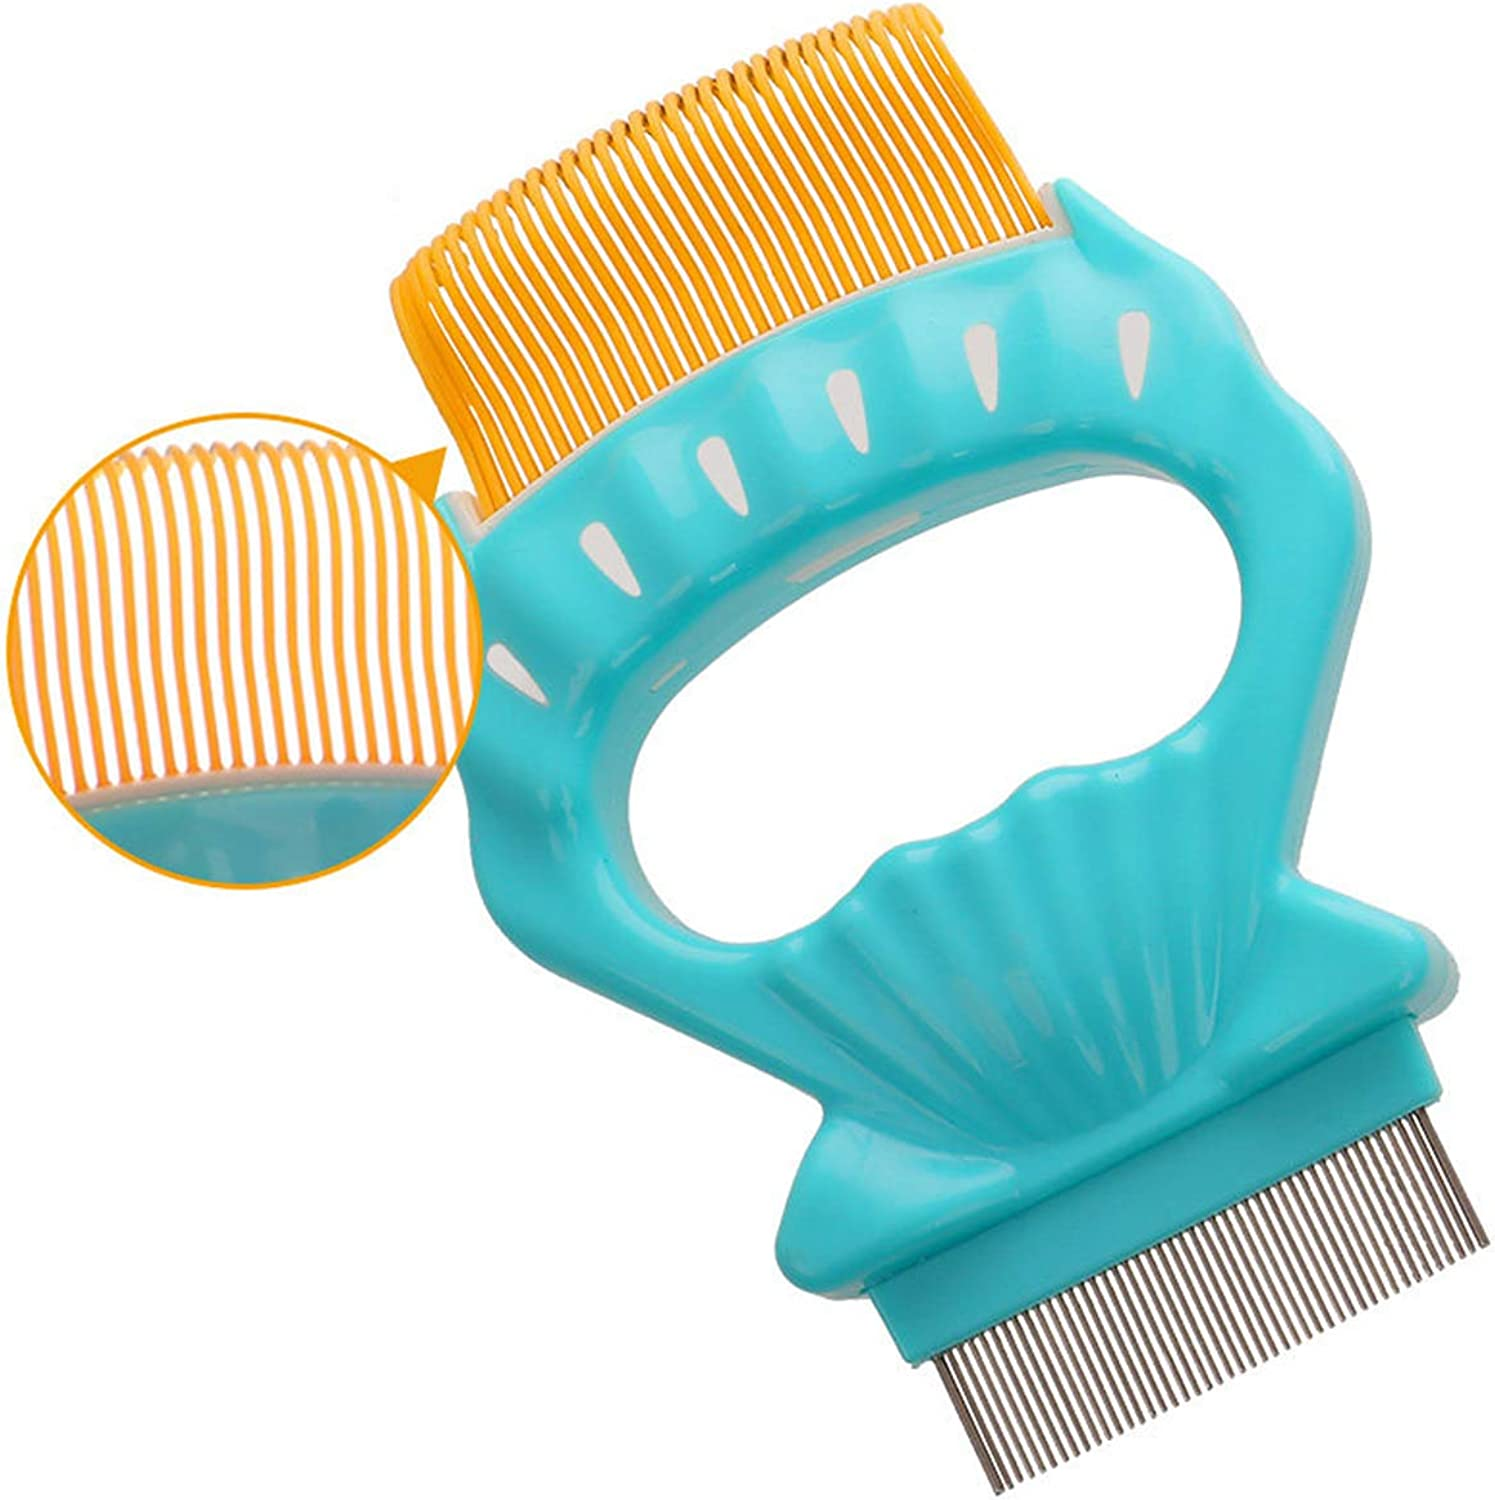 Pet Grooming Comb with Soft Teeth for ShortHaired Kitten Detachable Shell Massage Rake, Green